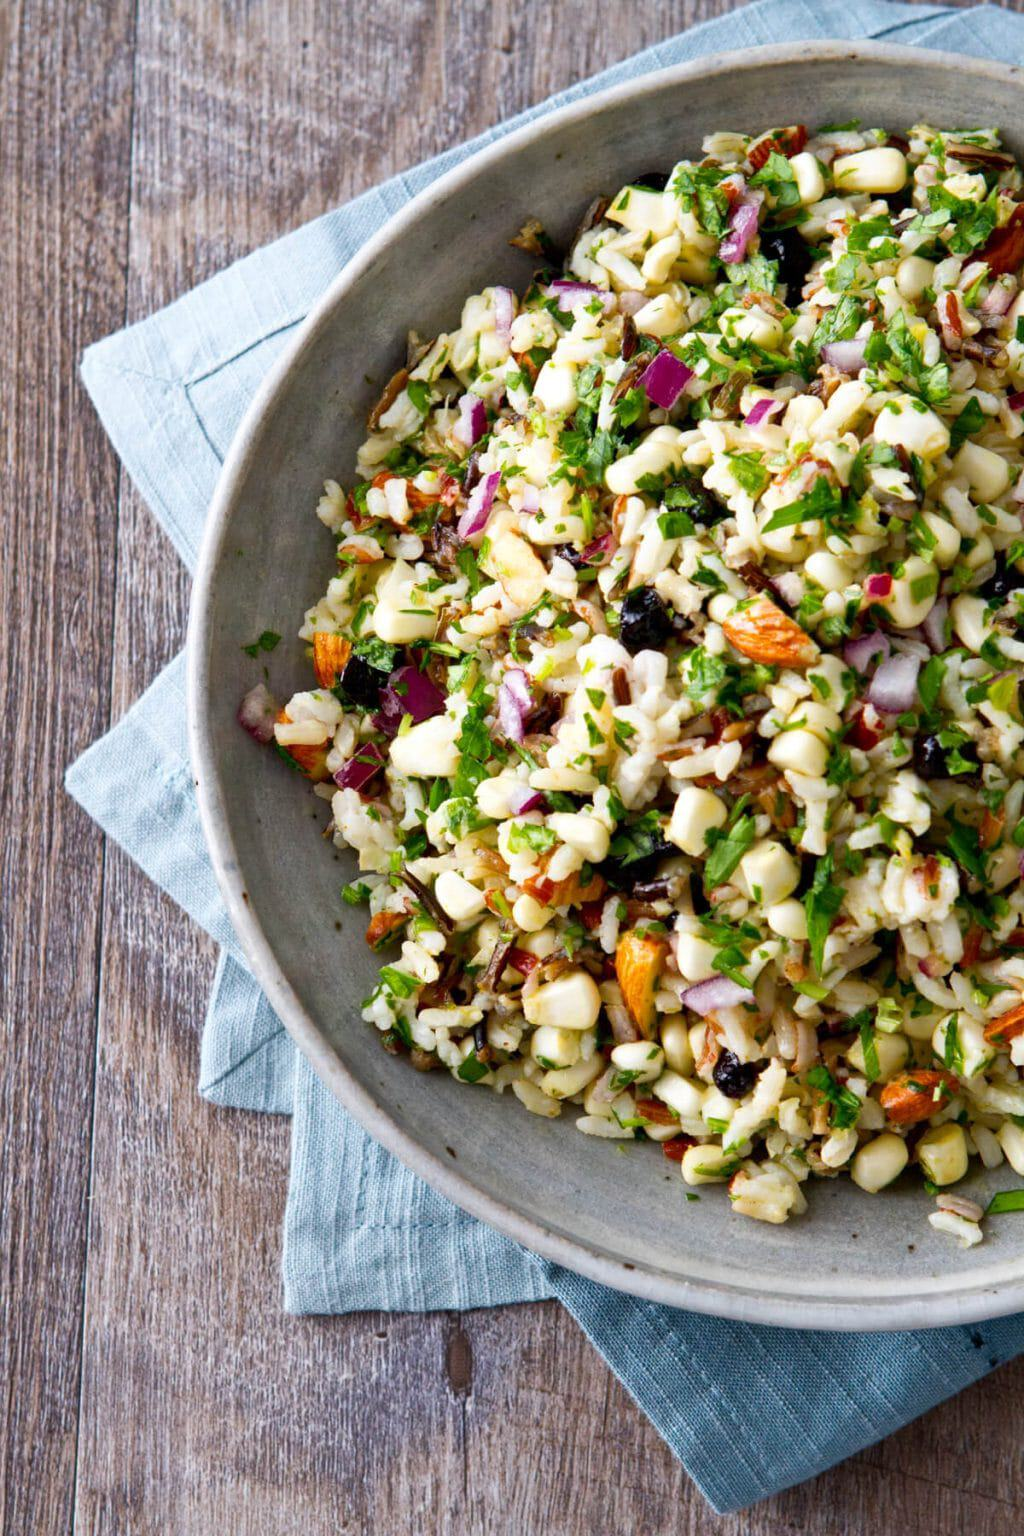 This healthy Corn and Blueberry Wild Rice Salad recipe is sweet, salty and crunchy and one you can't stop eating!